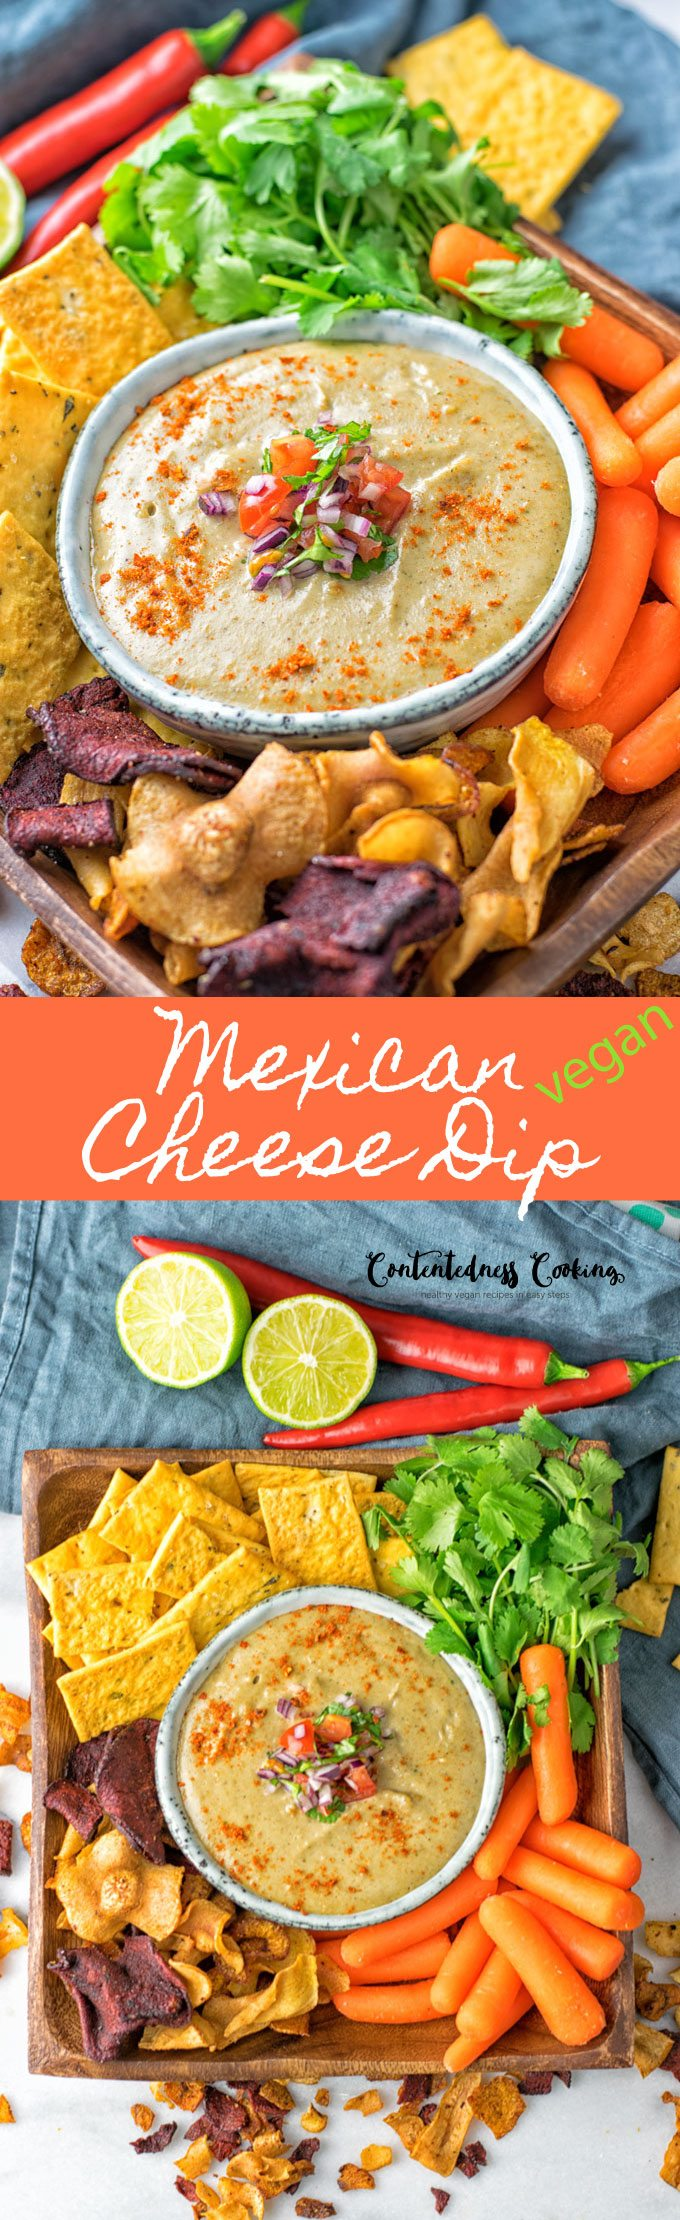 Collage of two pictures of the Mexican Cheese Dip with recipe title text.